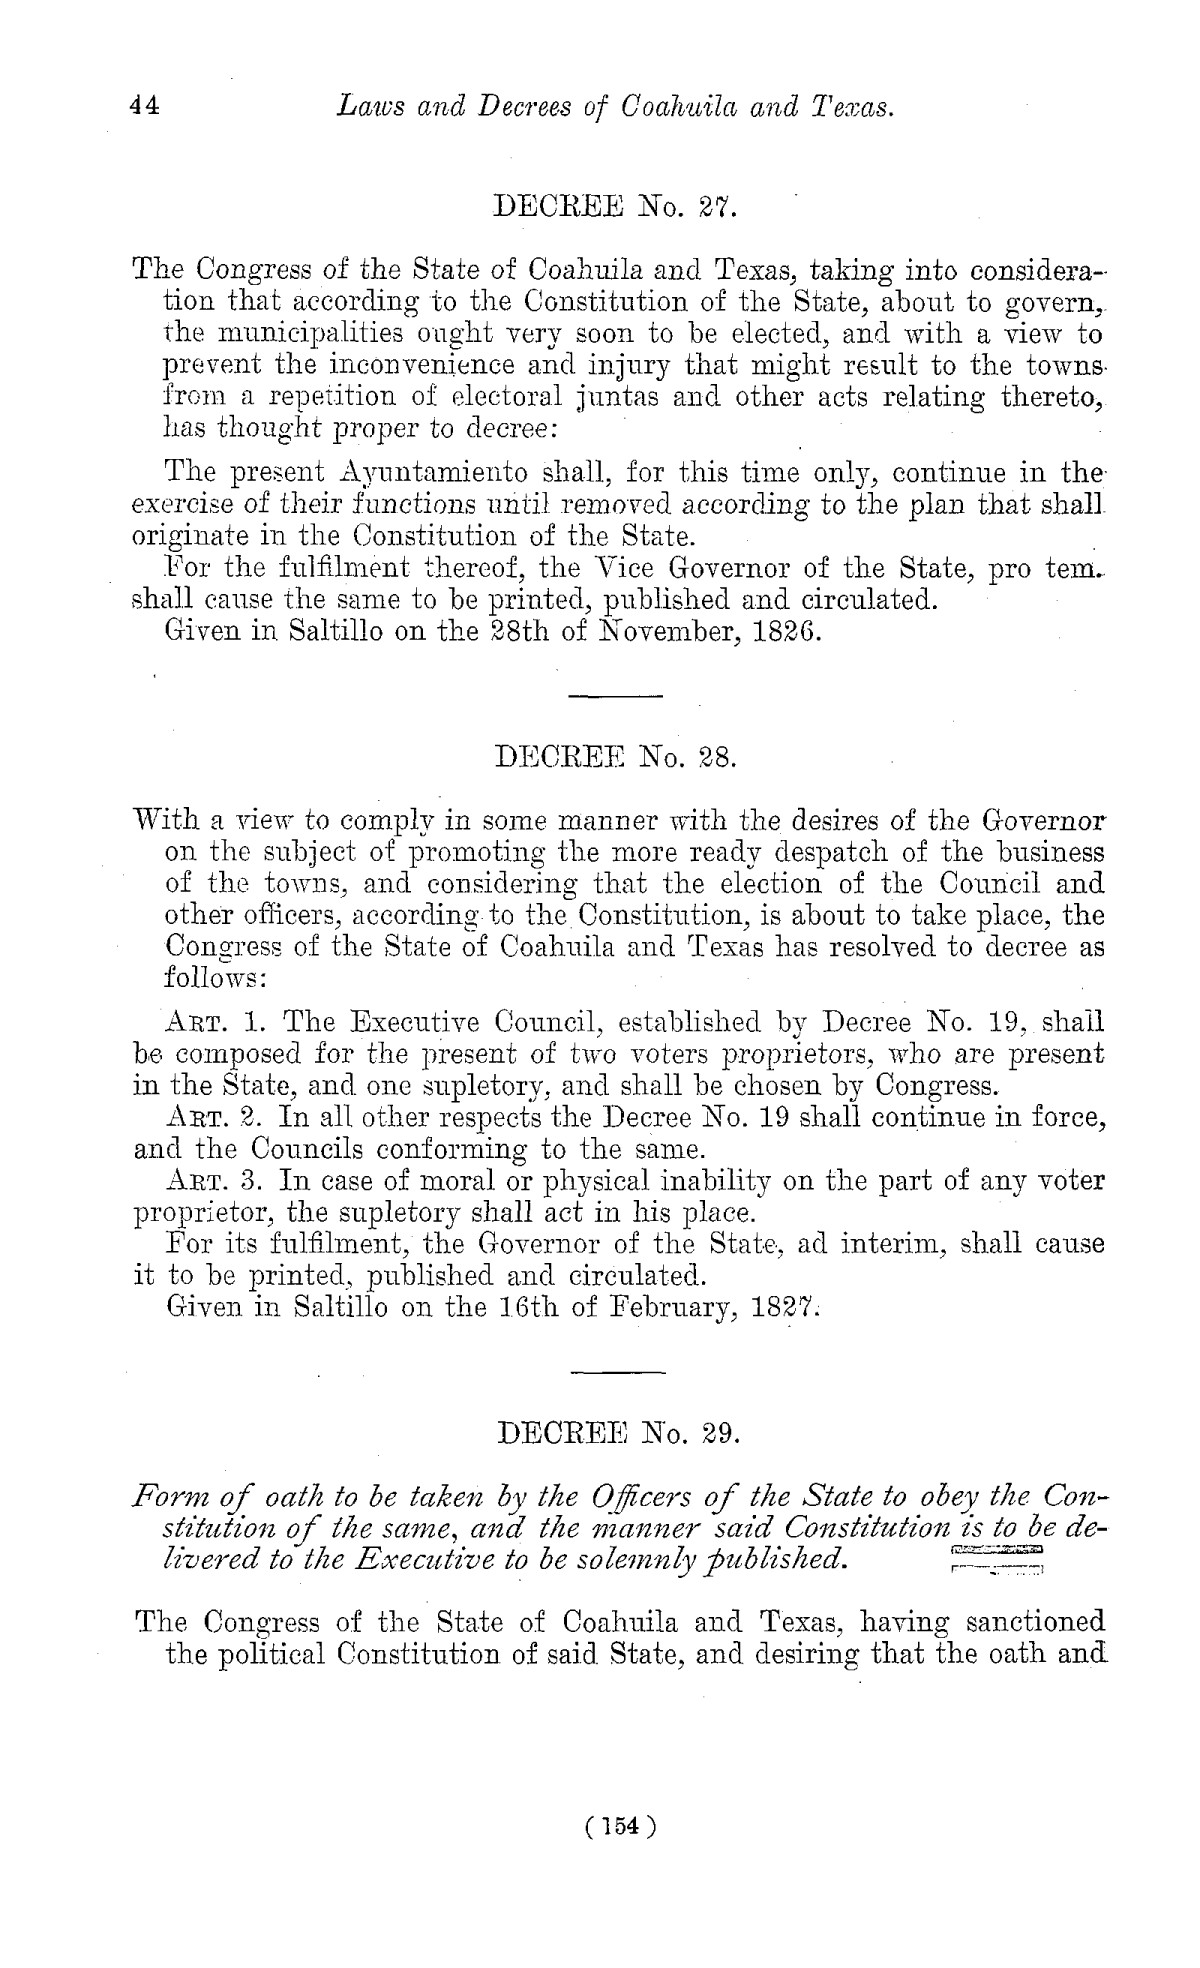 The Laws of Texas, 1822-1897 Volume 1                                                                                                      154